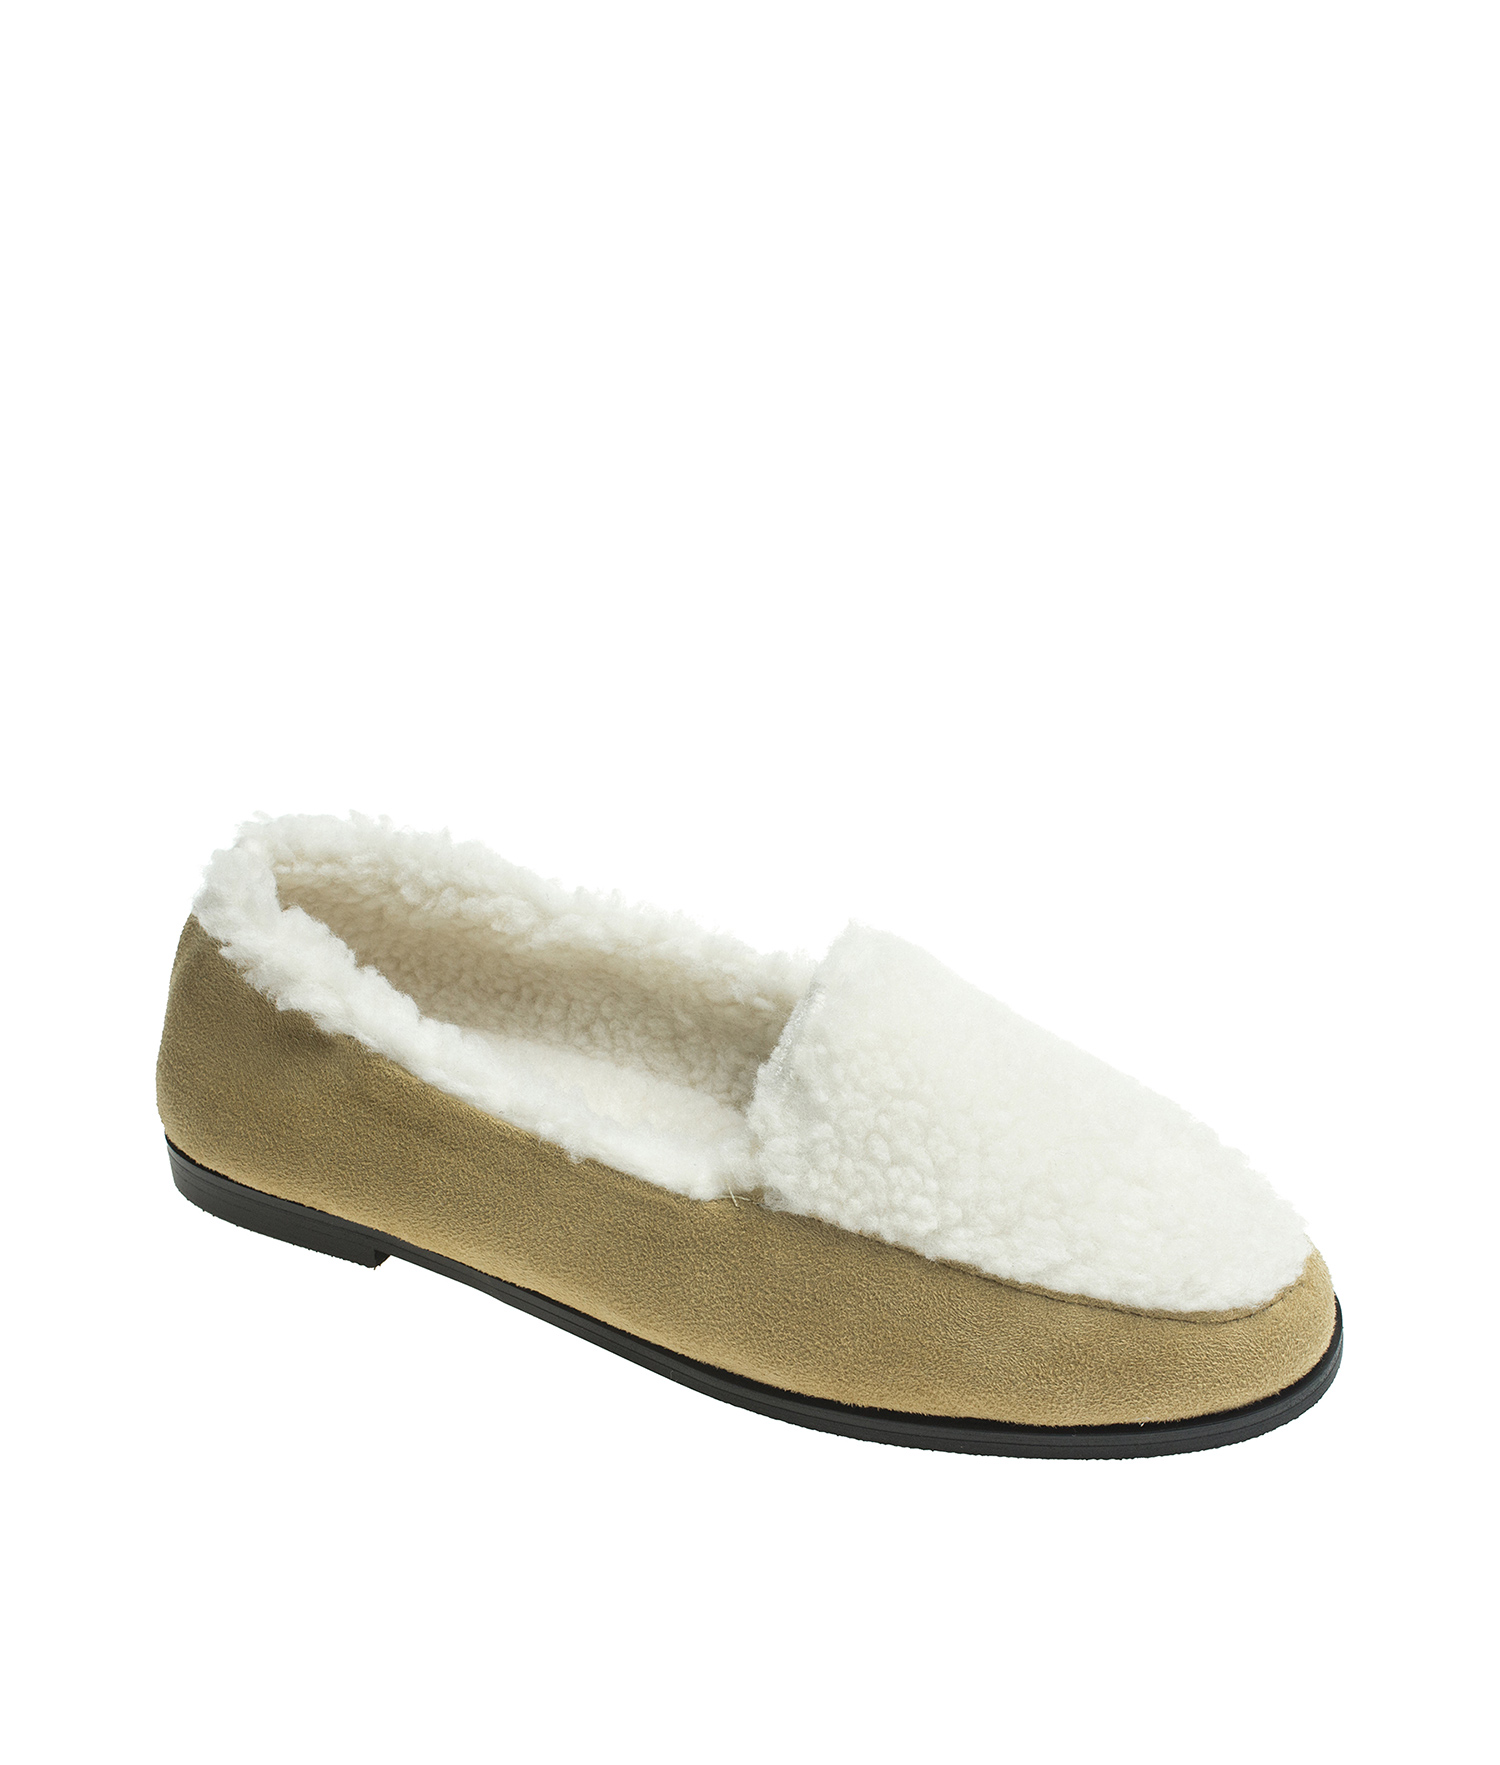 fdf79afcccc AnnaKastle Womens Two Tone Shearling Loafers Beige